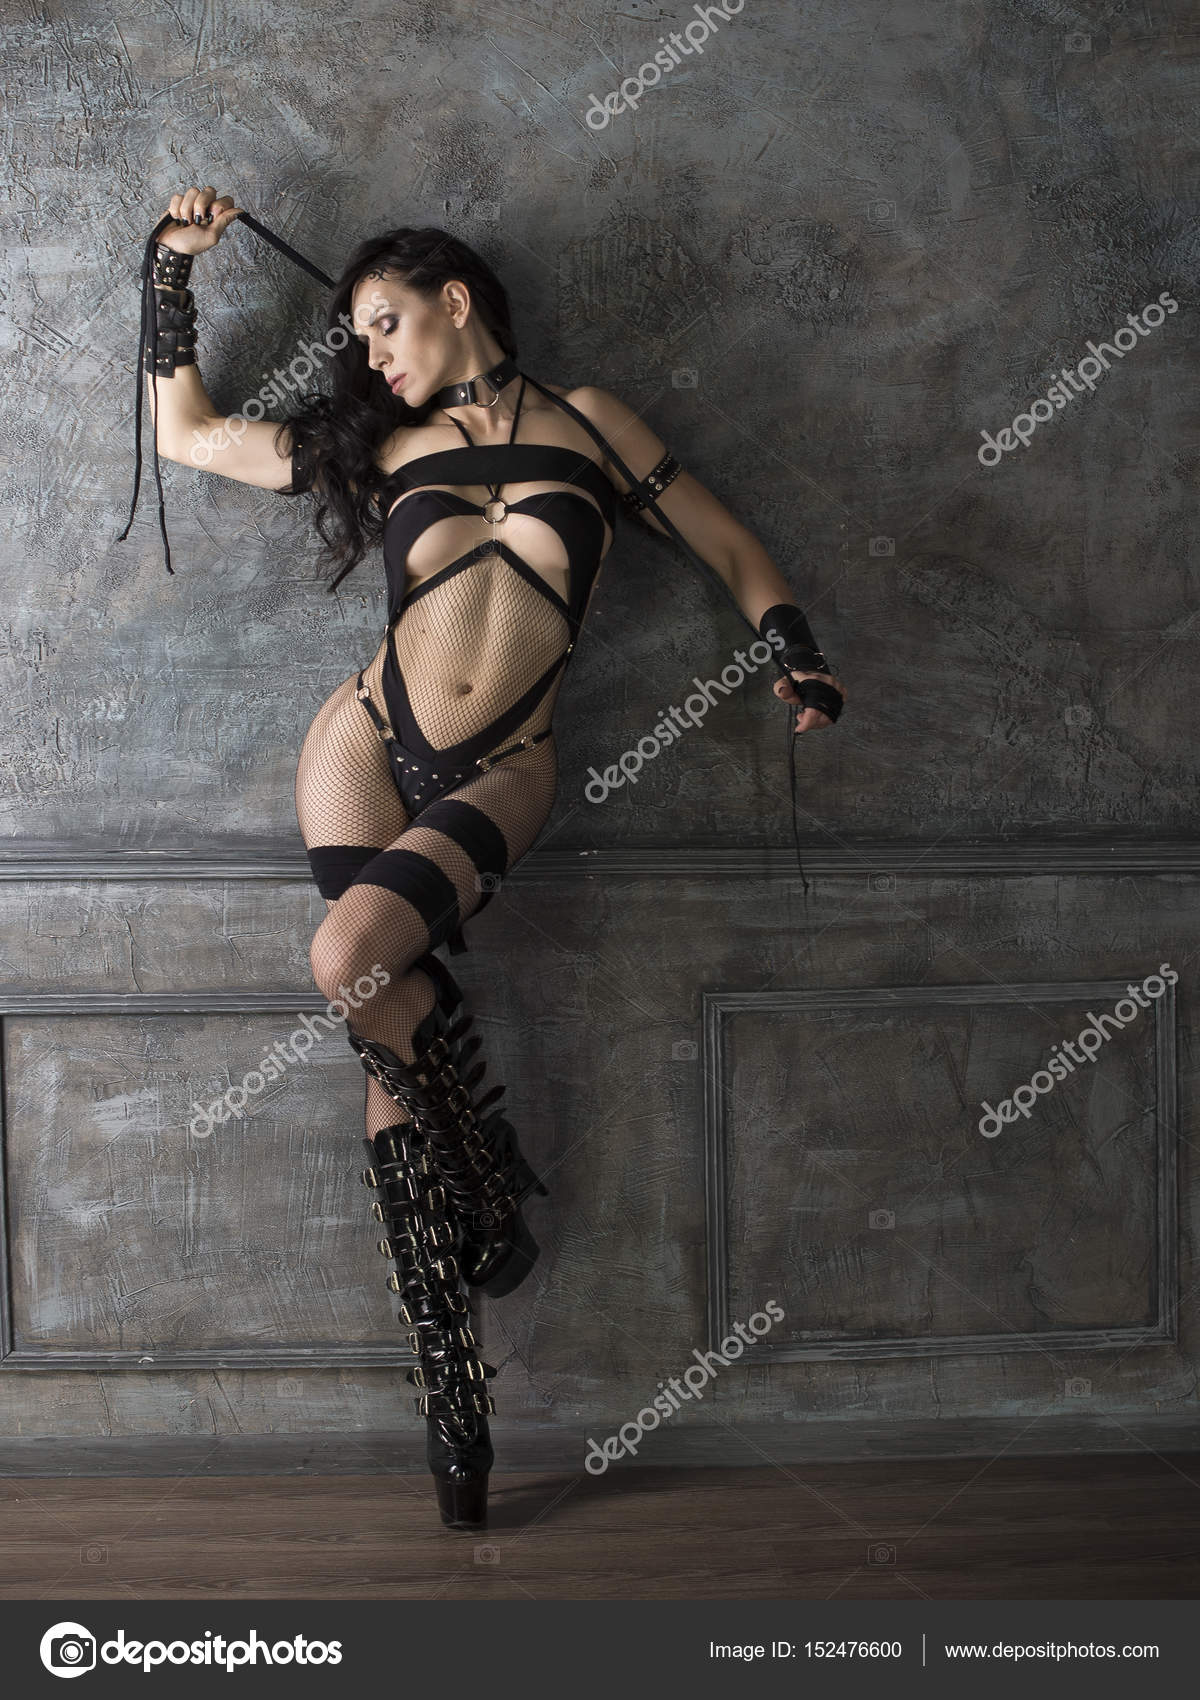 Woman in bdsm